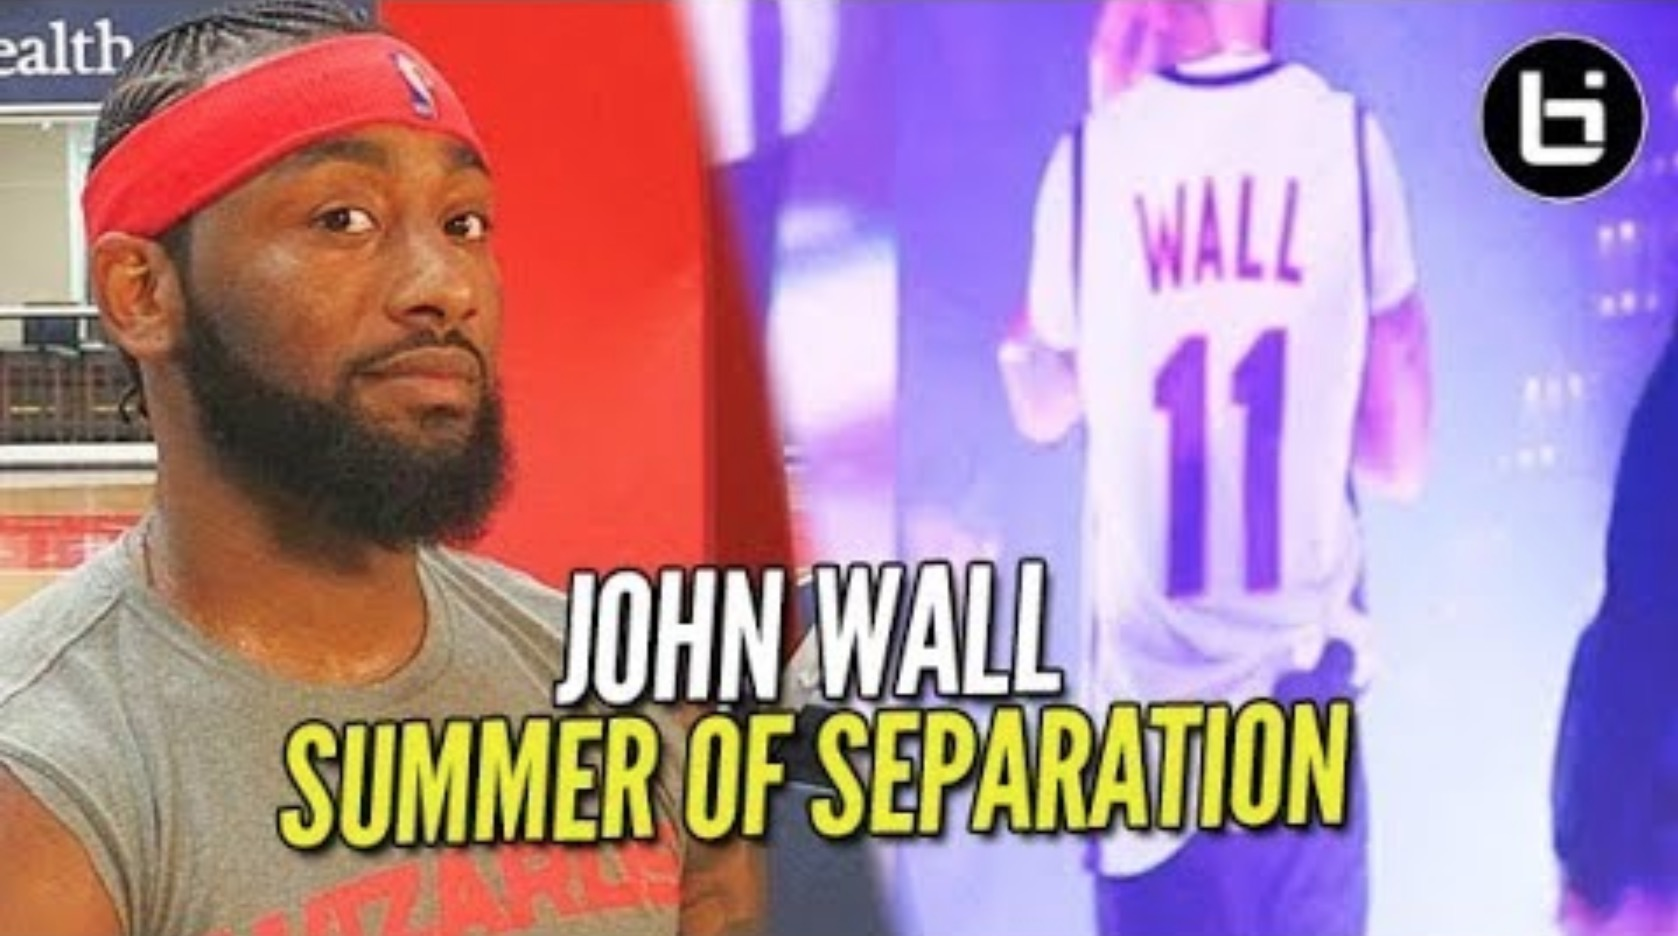 John Wall Season 2 Episode 8